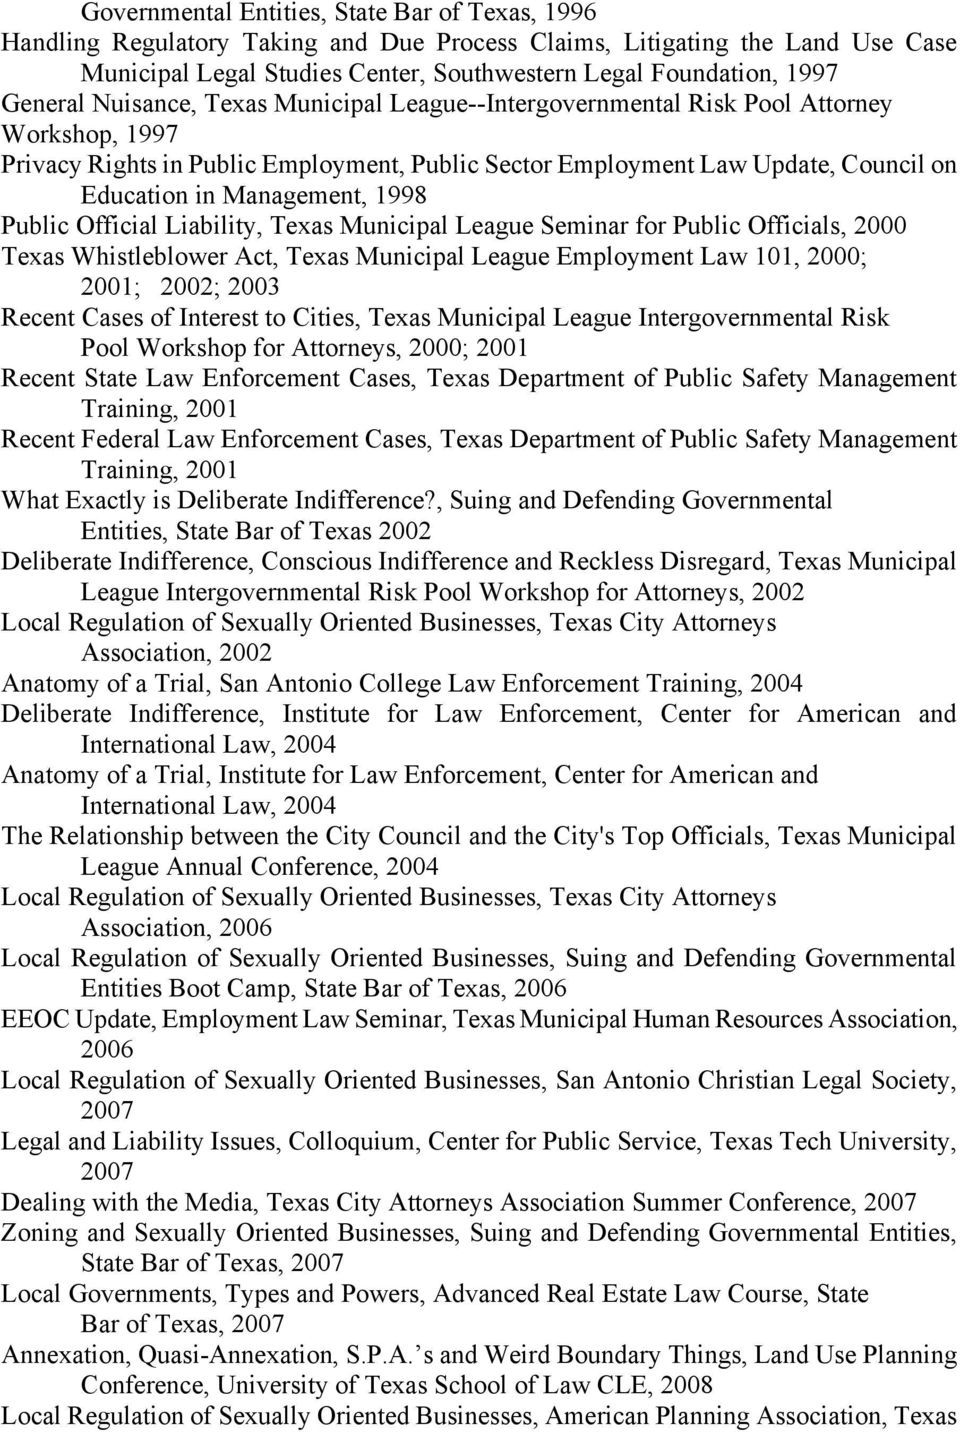 Management, 1998 Public Official Liability, Texas Municipal League Seminar for Public Officials, 2000 Texas Whistleblower Act, Texas Municipal League Employment Law 101, 2000; 2001; 2002; 2003 Recent